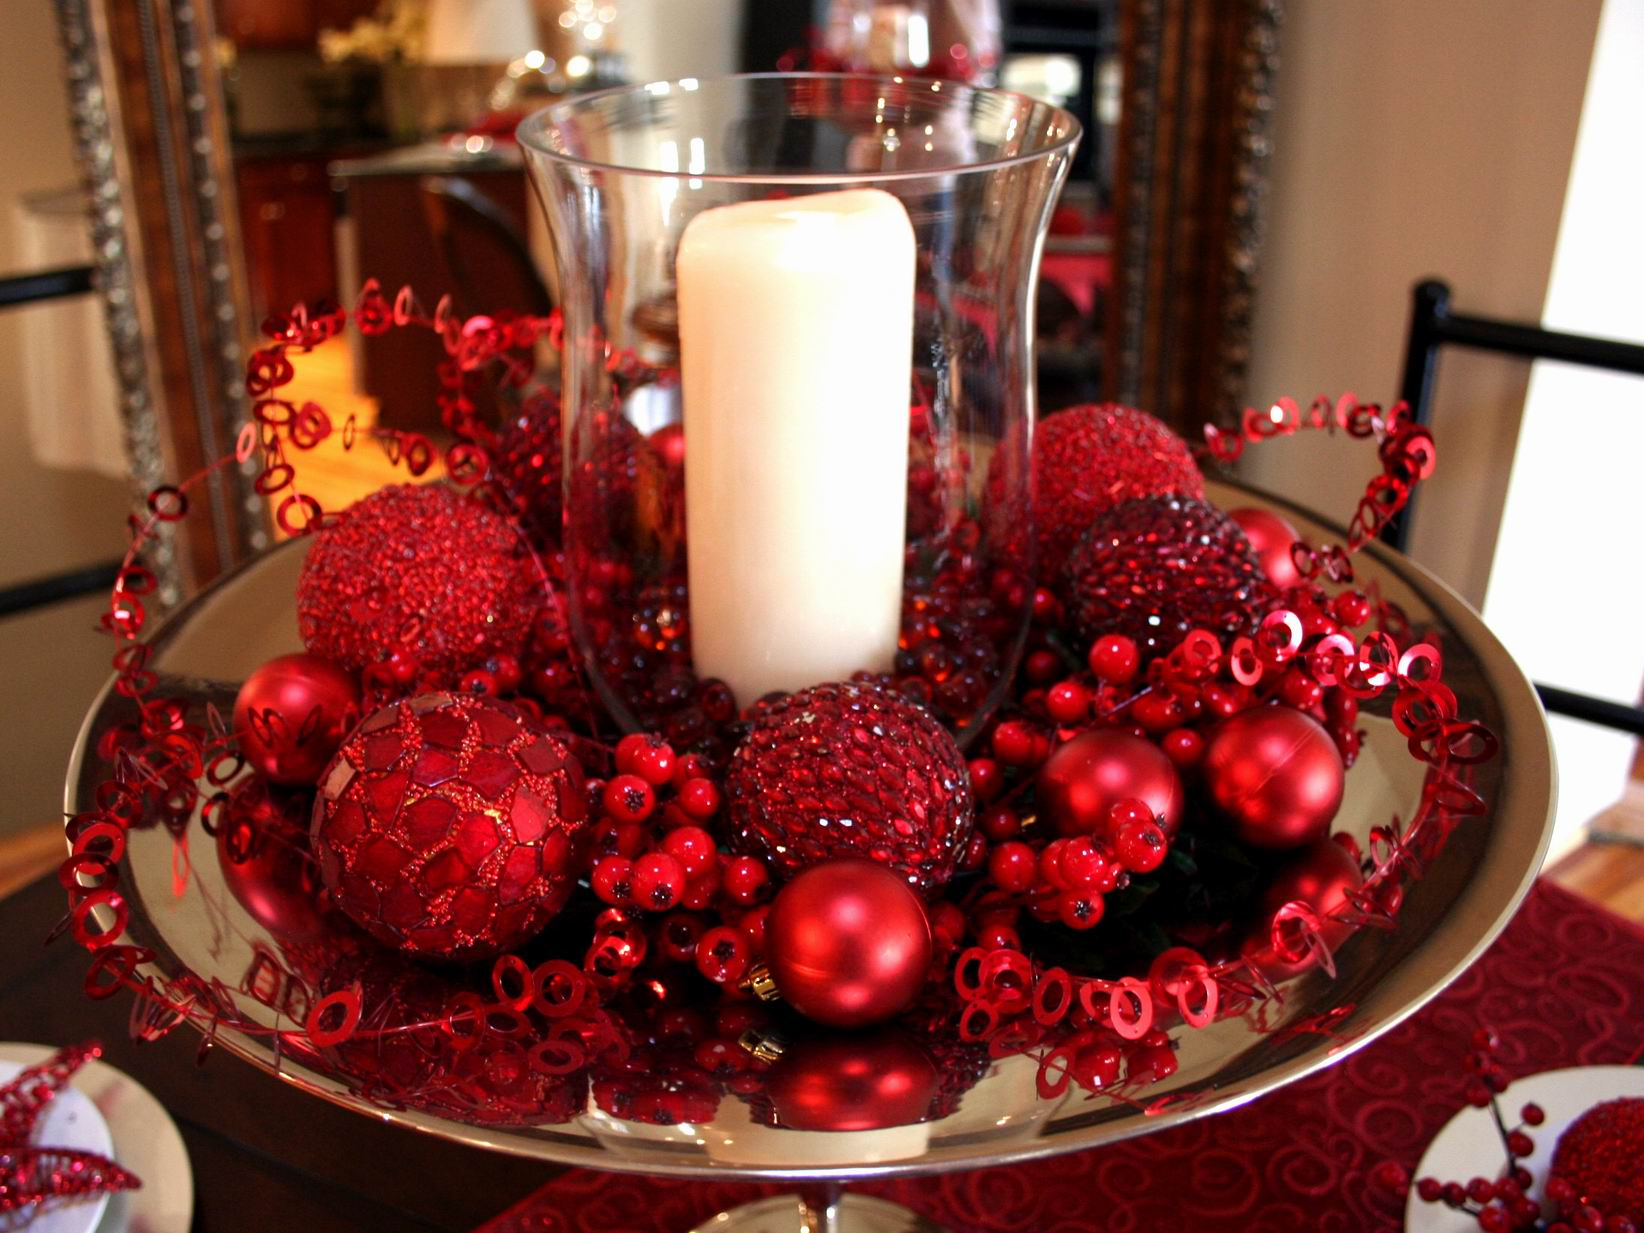 Fascinating Christmas Banquet Table Decoration Ideas : Cool Christmas Banquet Table Decoration Ideas With Exotic Red Christmas Decor With Chic White Candle Holder In Unique Glass And Stainless Tray